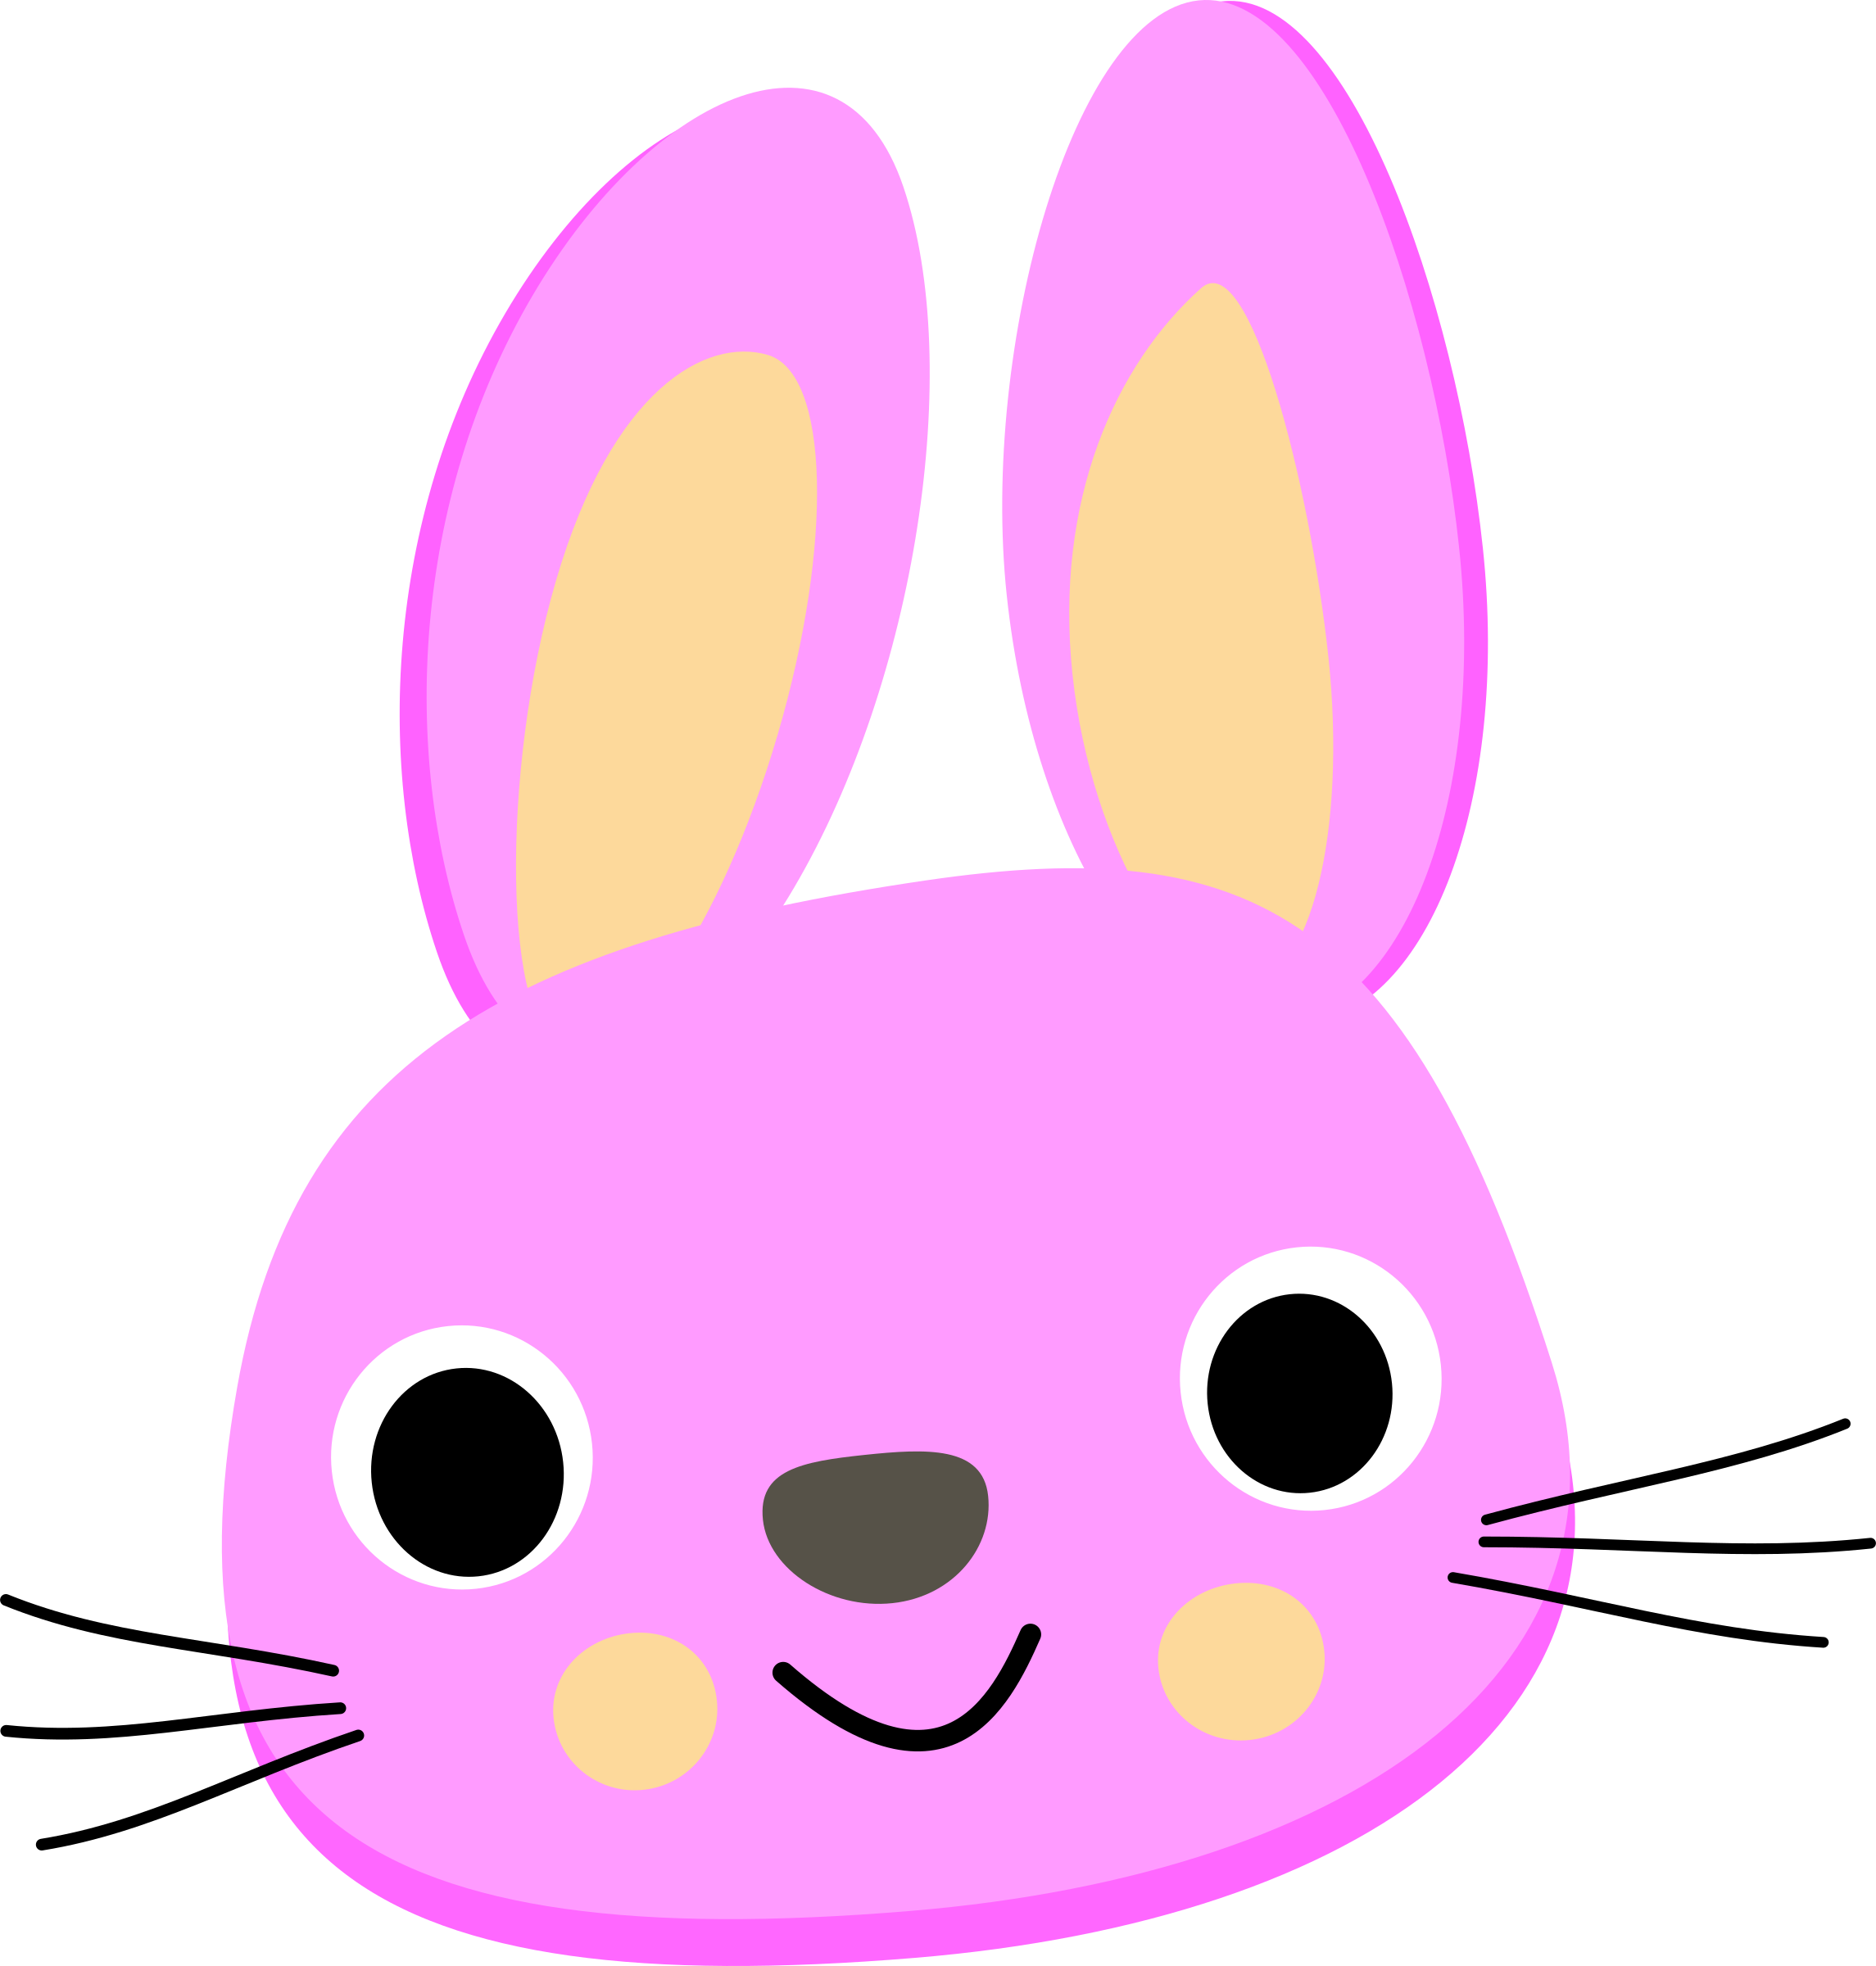 Png Rabbit Face Transparent Rabbit Face Png Images